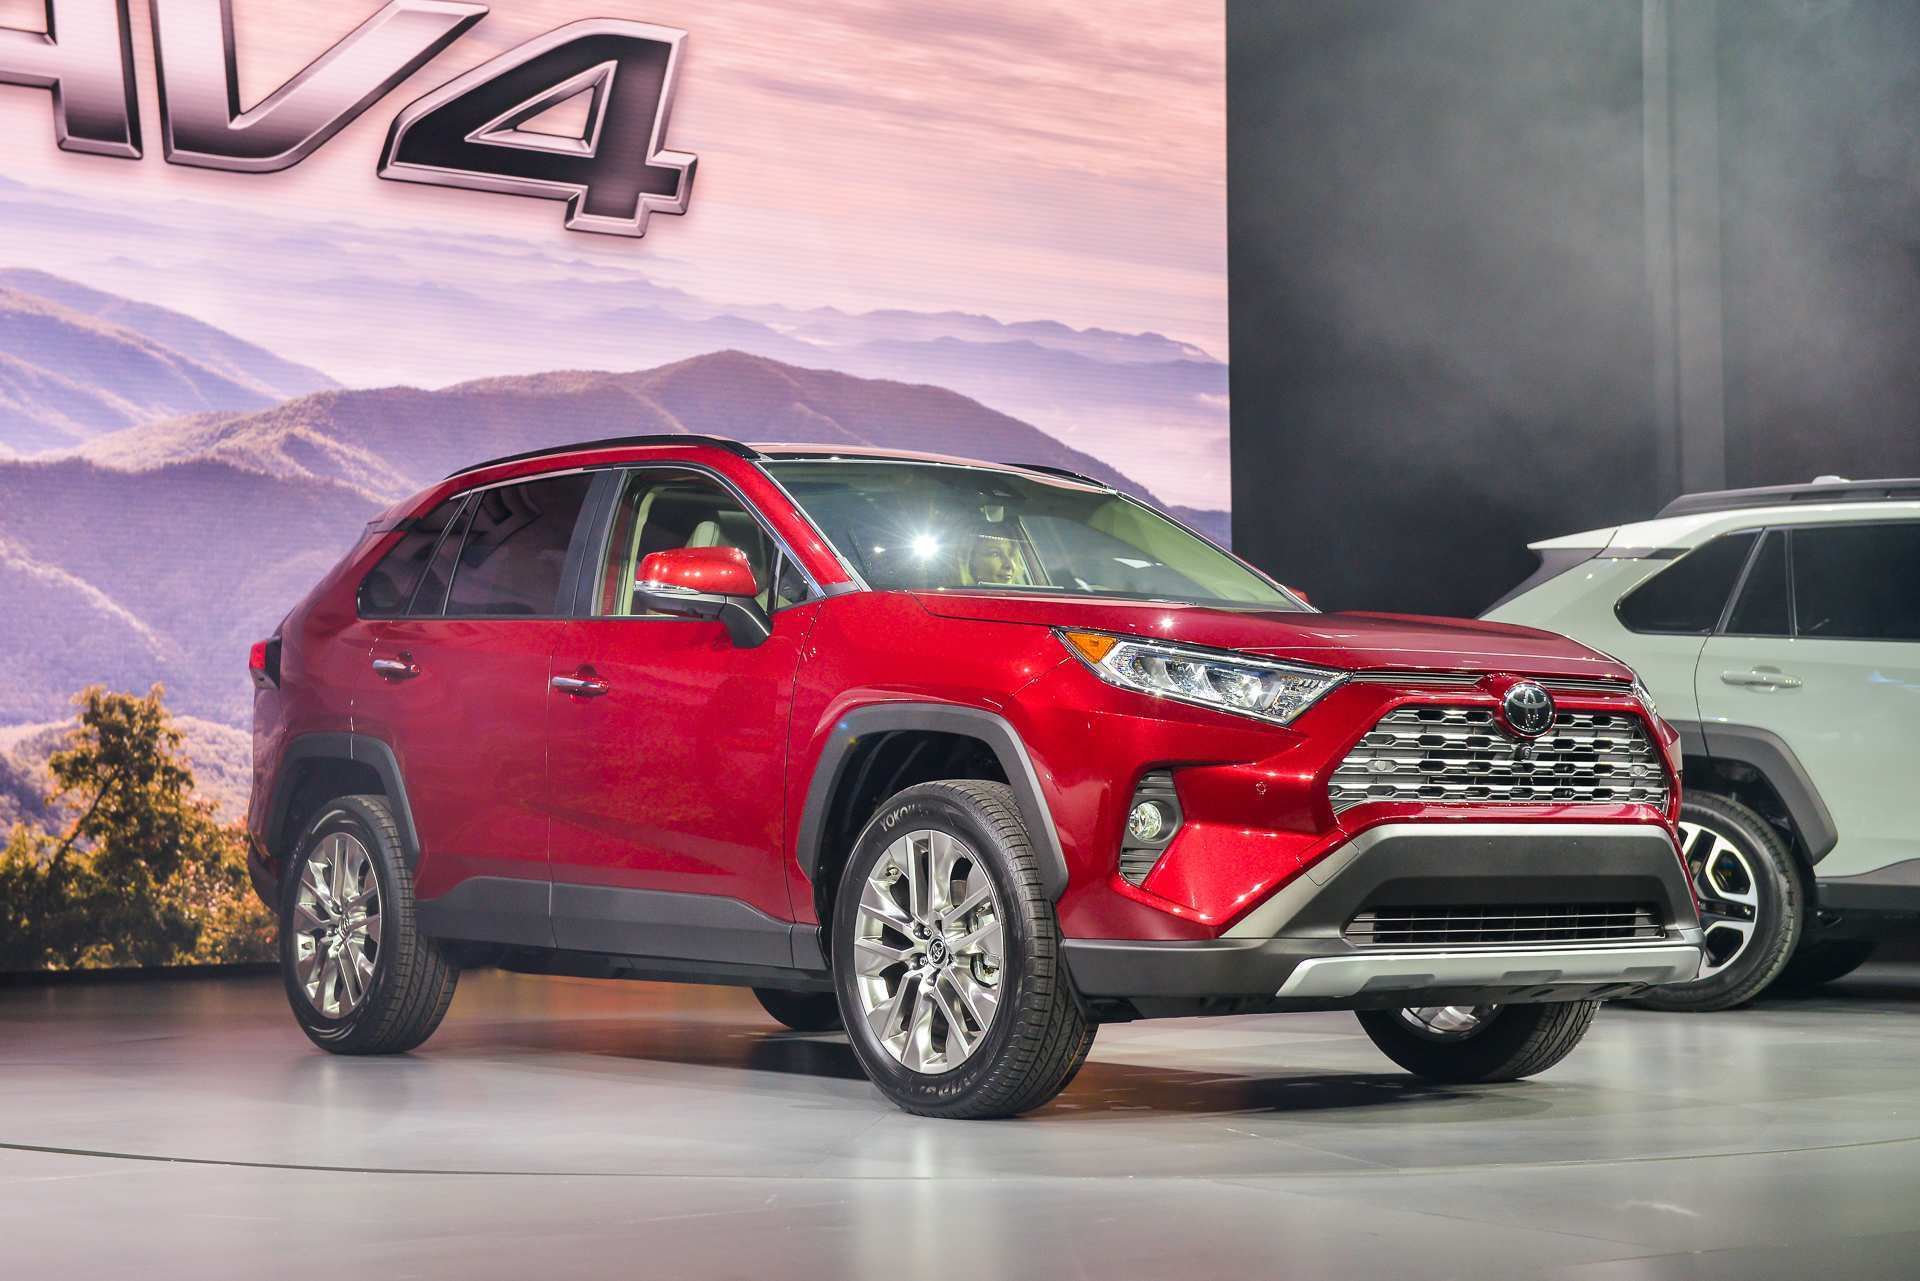 98 New 2020 Toyota Rav4 Ground Clearance Ratings for 2020 Toyota Rav4 Ground Clearance